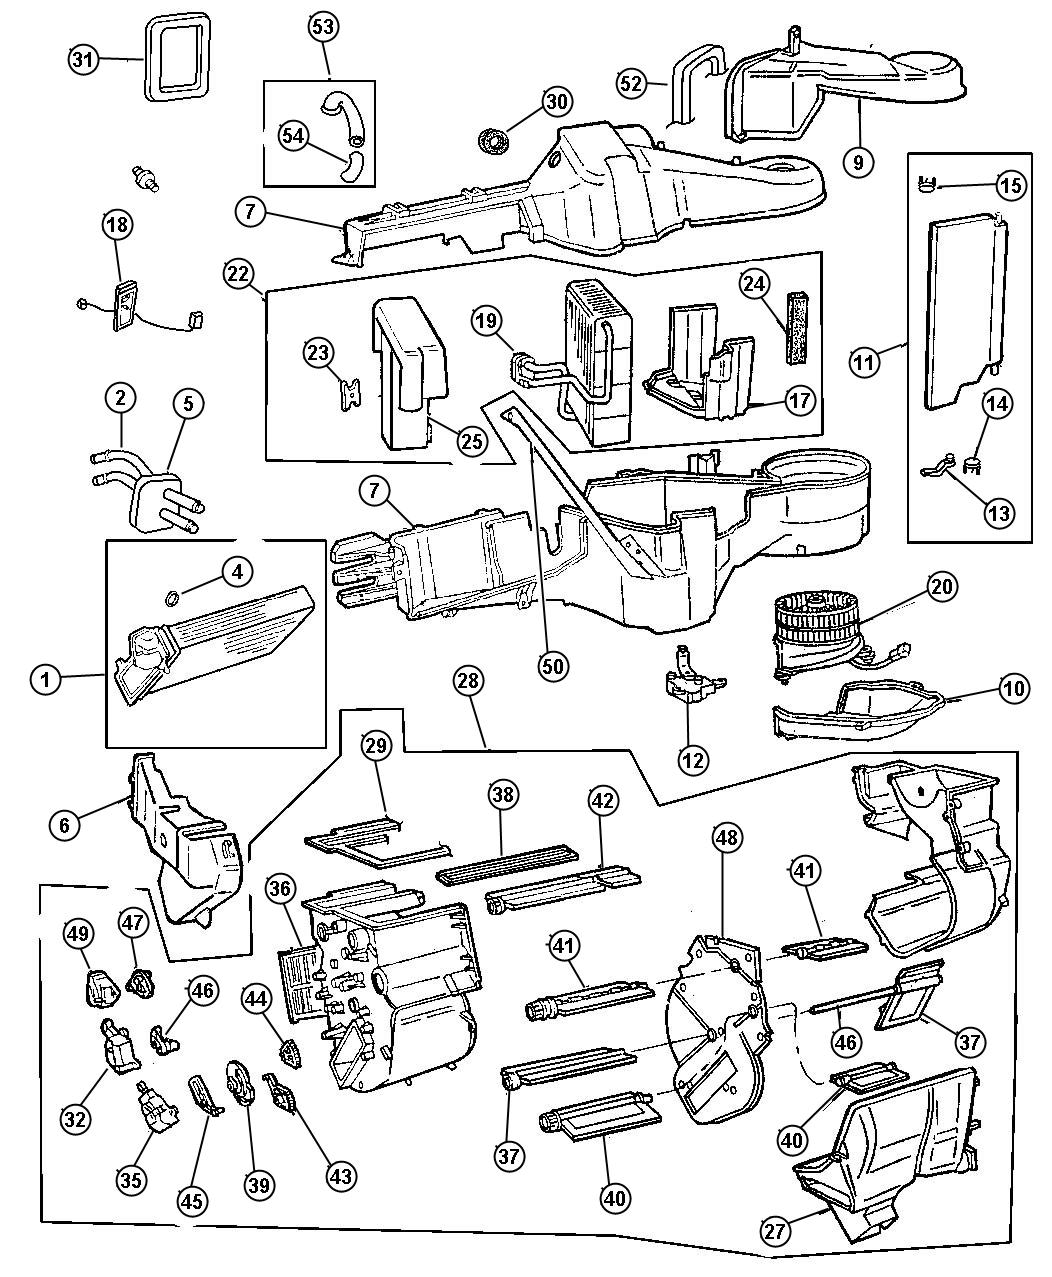 Service manual [1998 Plymouth Voyager How To Remove Heater